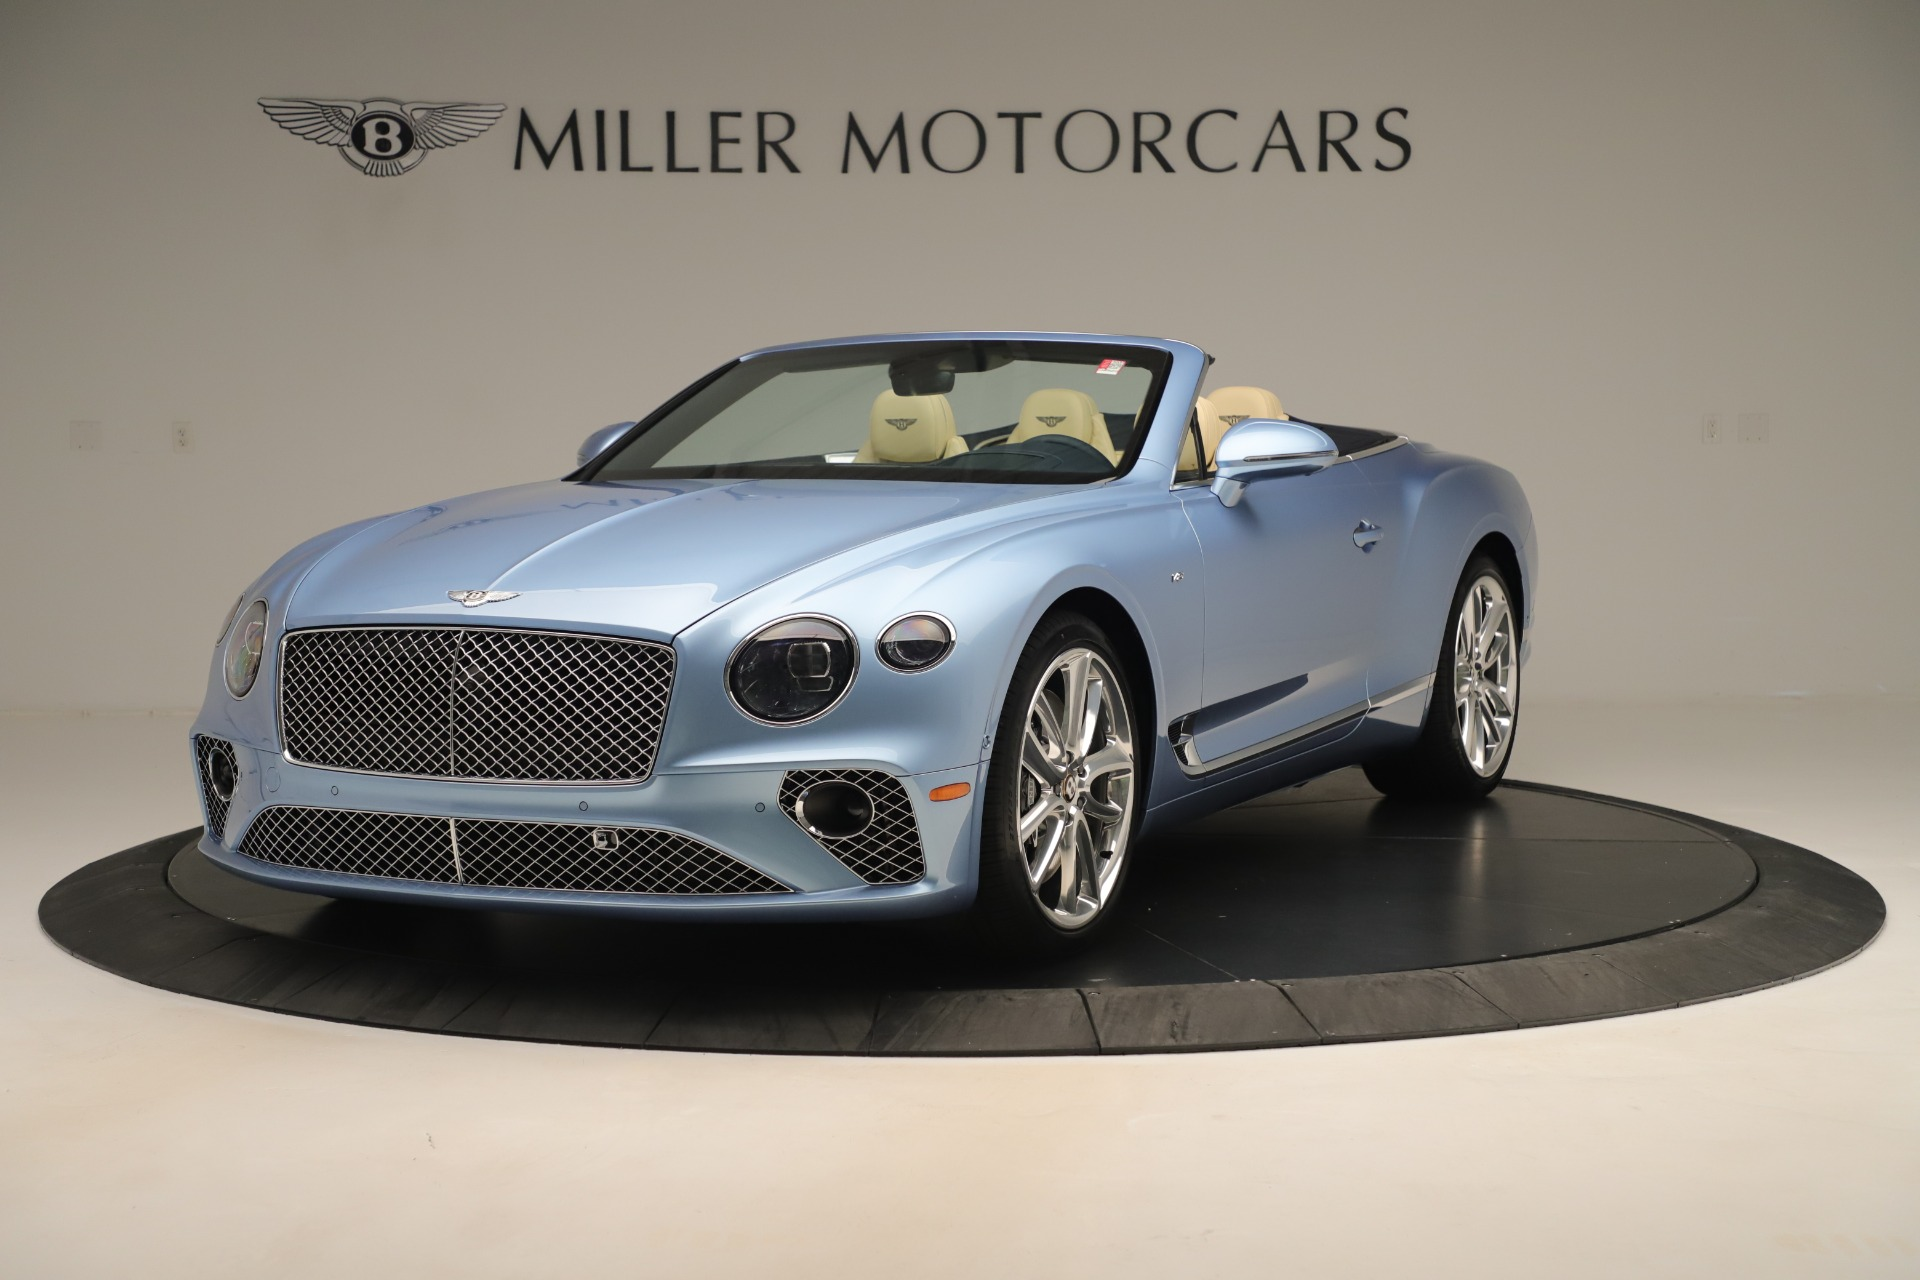 Used 2020 Bentley Continental GTC V8 for sale $288,020 at Maserati of Westport in Westport CT 06880 1